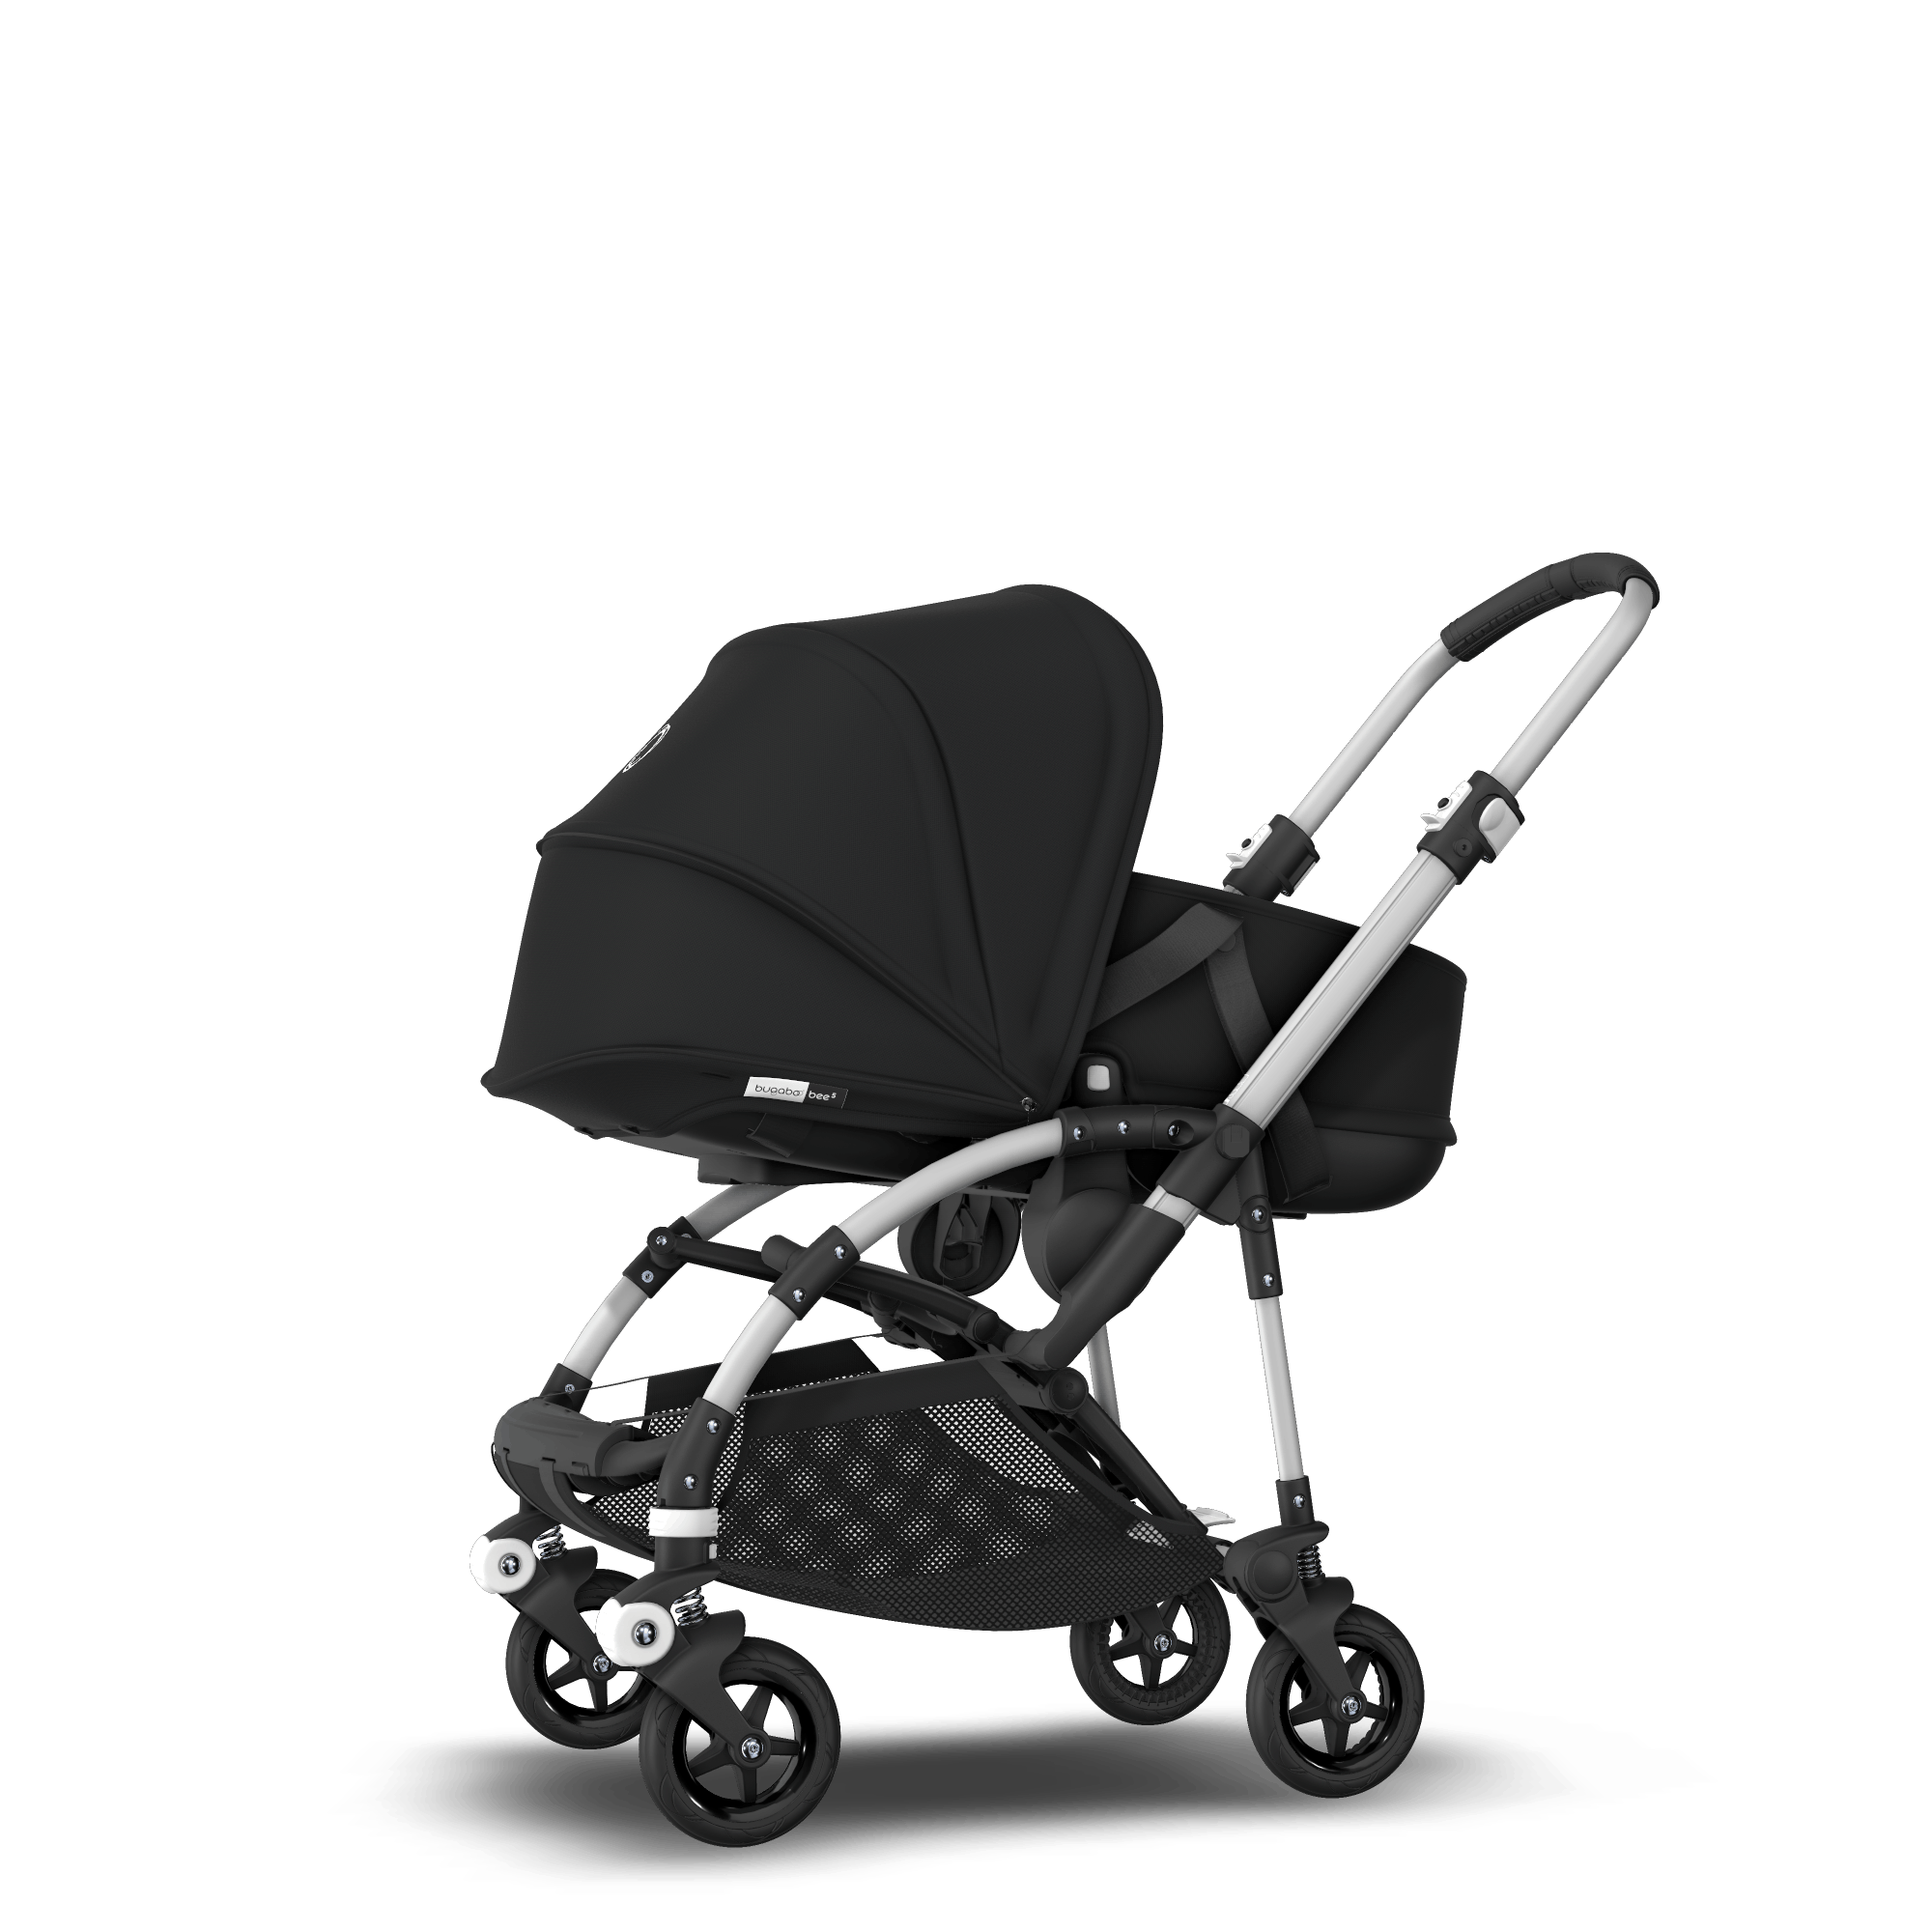 Umbrella Stroller First Years Bugaboo Bee5 Seat And Bassinet Stroller Bugaboo